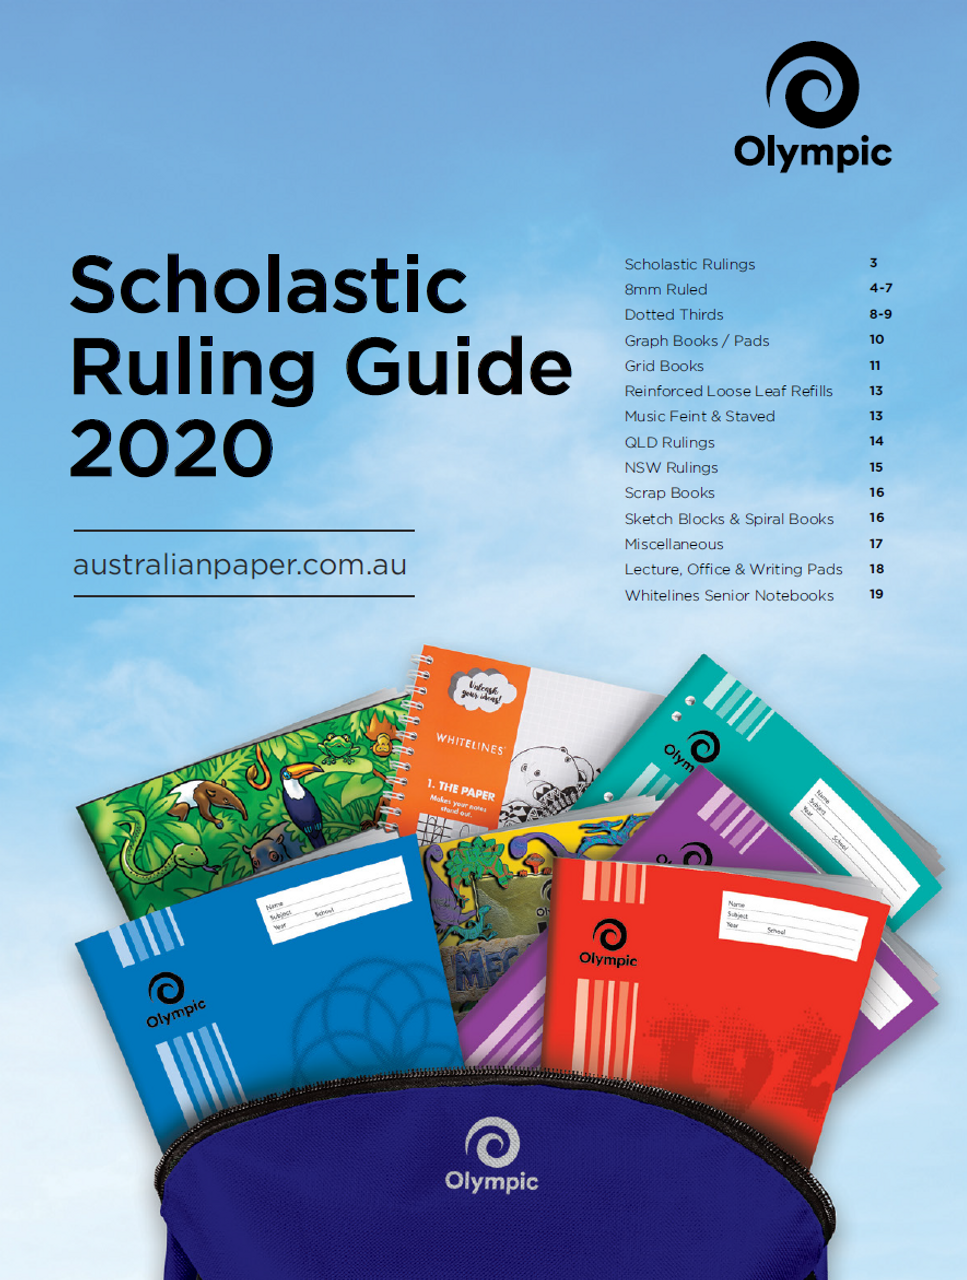 OLYMPIC SCHOLASTIC RULING GUIDE FOR 2020 BACK TO SCHOOL